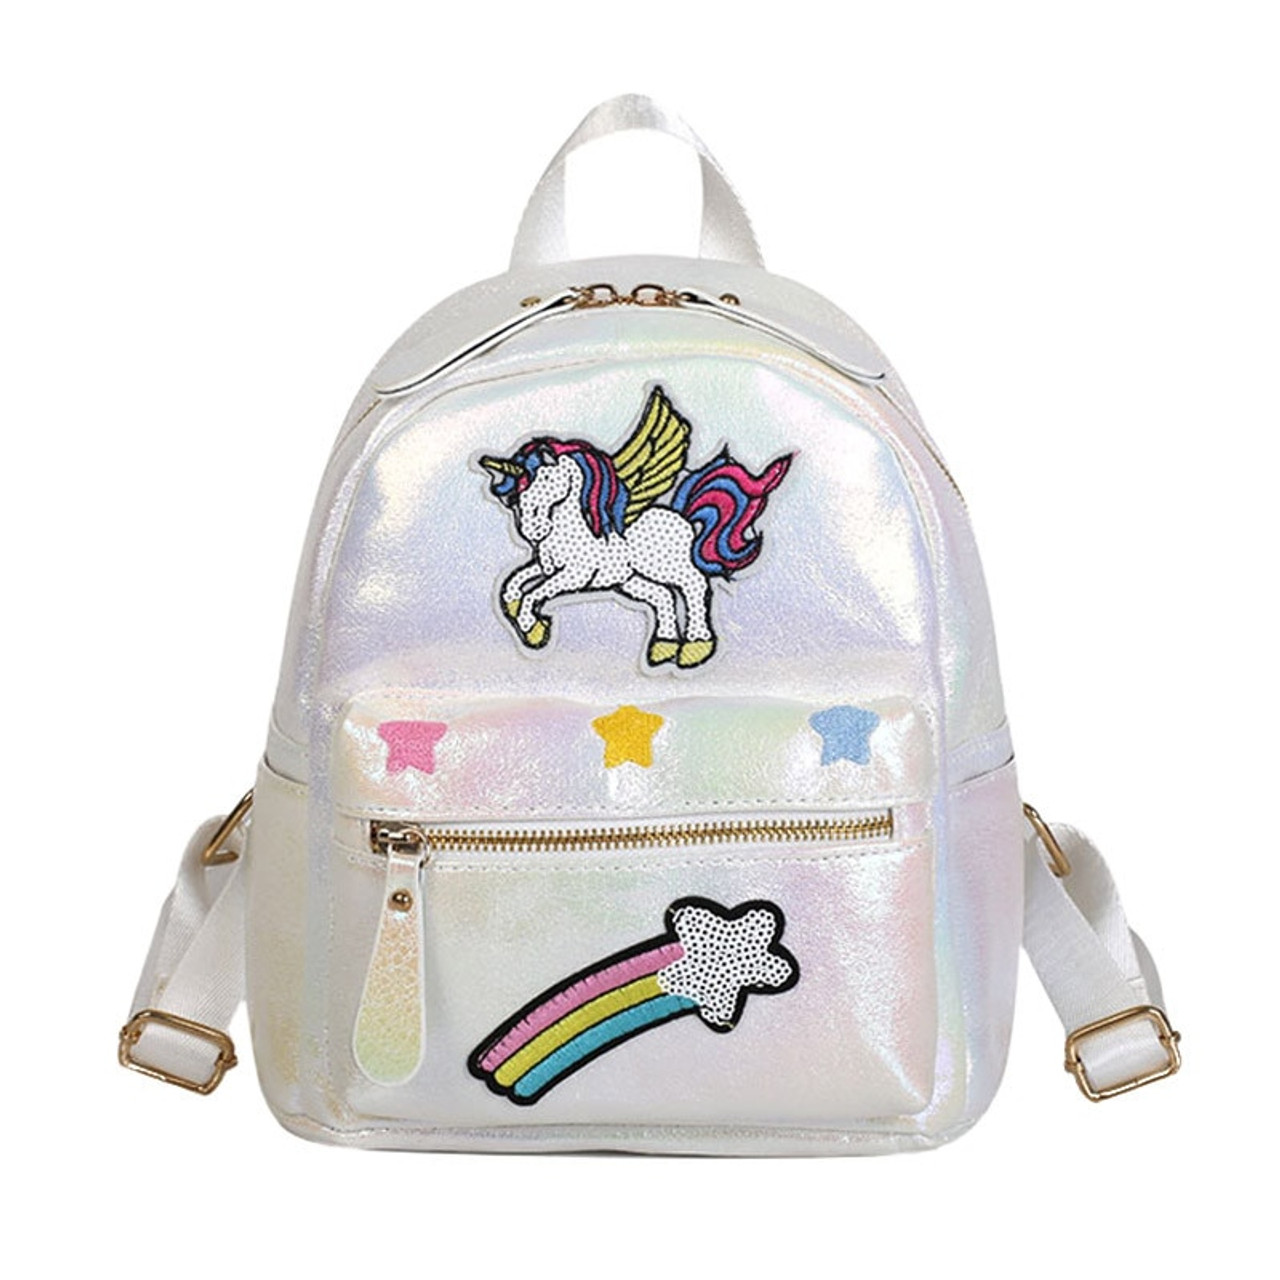 26802c7419a Unicorn Women Leather Backpack Rainbow Sequins Back Pack Bags Fashion  Schoolbag For Teenager Girls Travel Mini Mochila New 2018